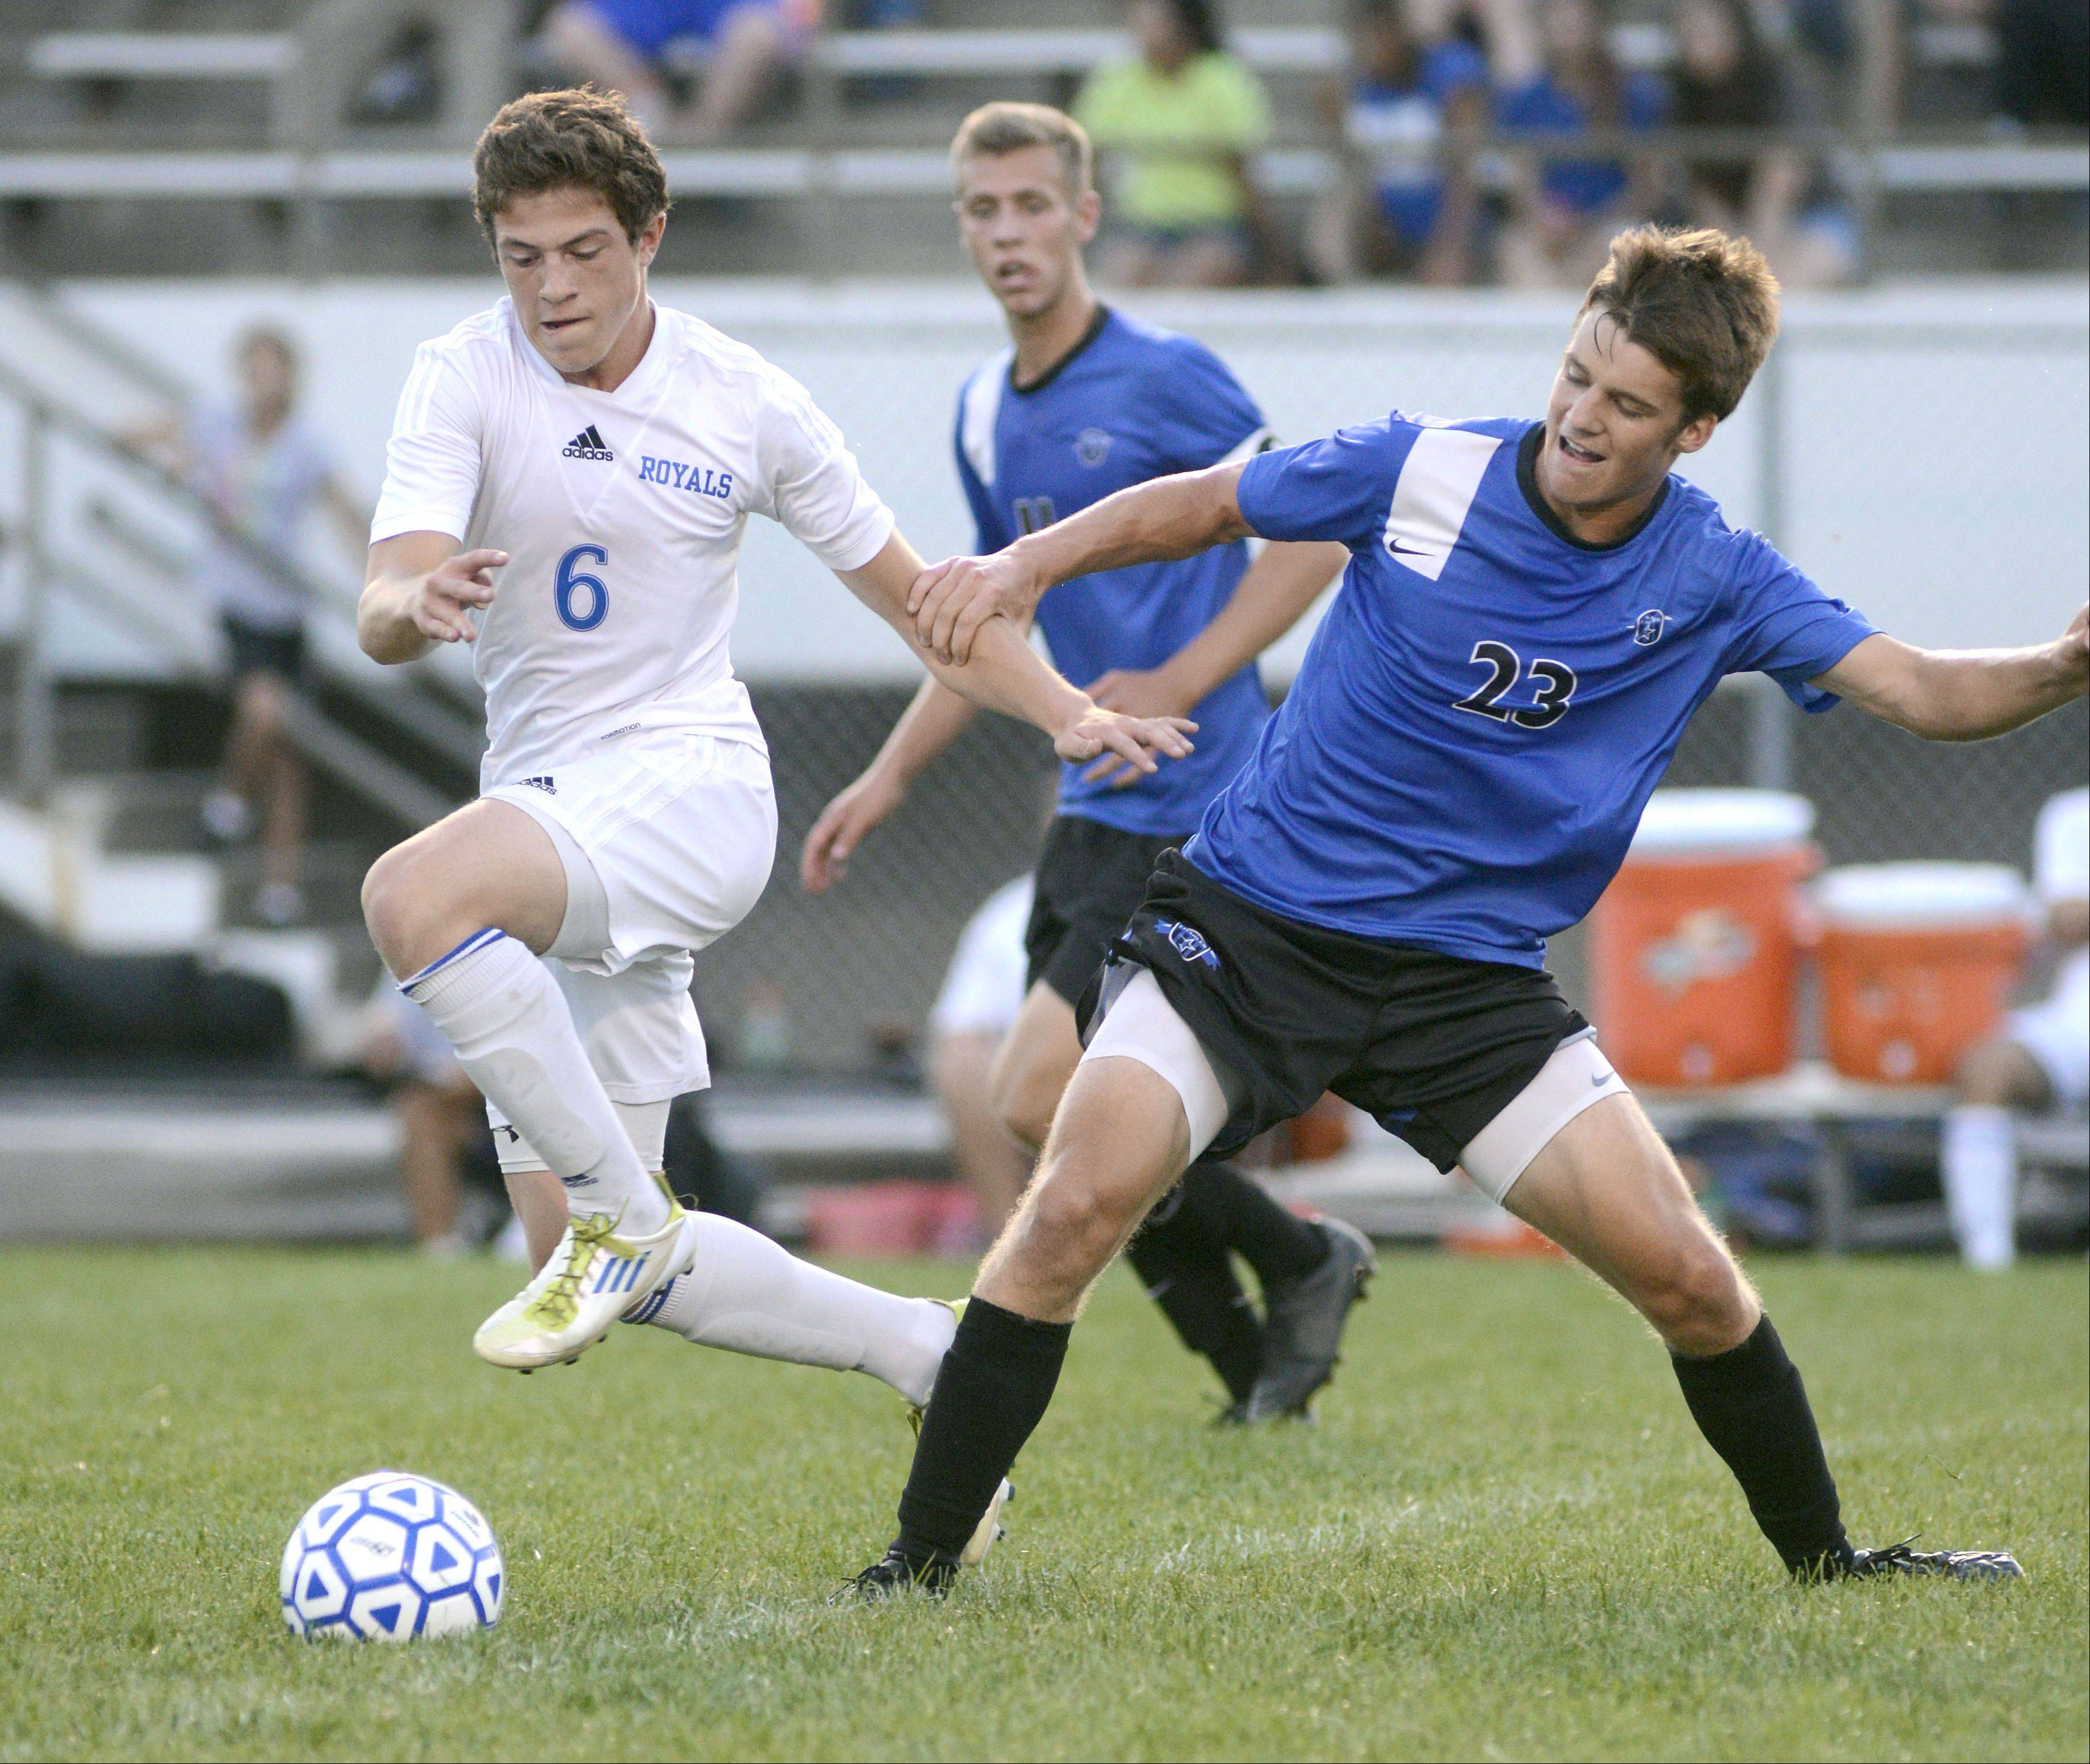 Larkin's Josh Garcia powers through an attempted steal by St. Charles North's Adam Hoffman in the first half on Tuesday at Memorial Field in Elgin.